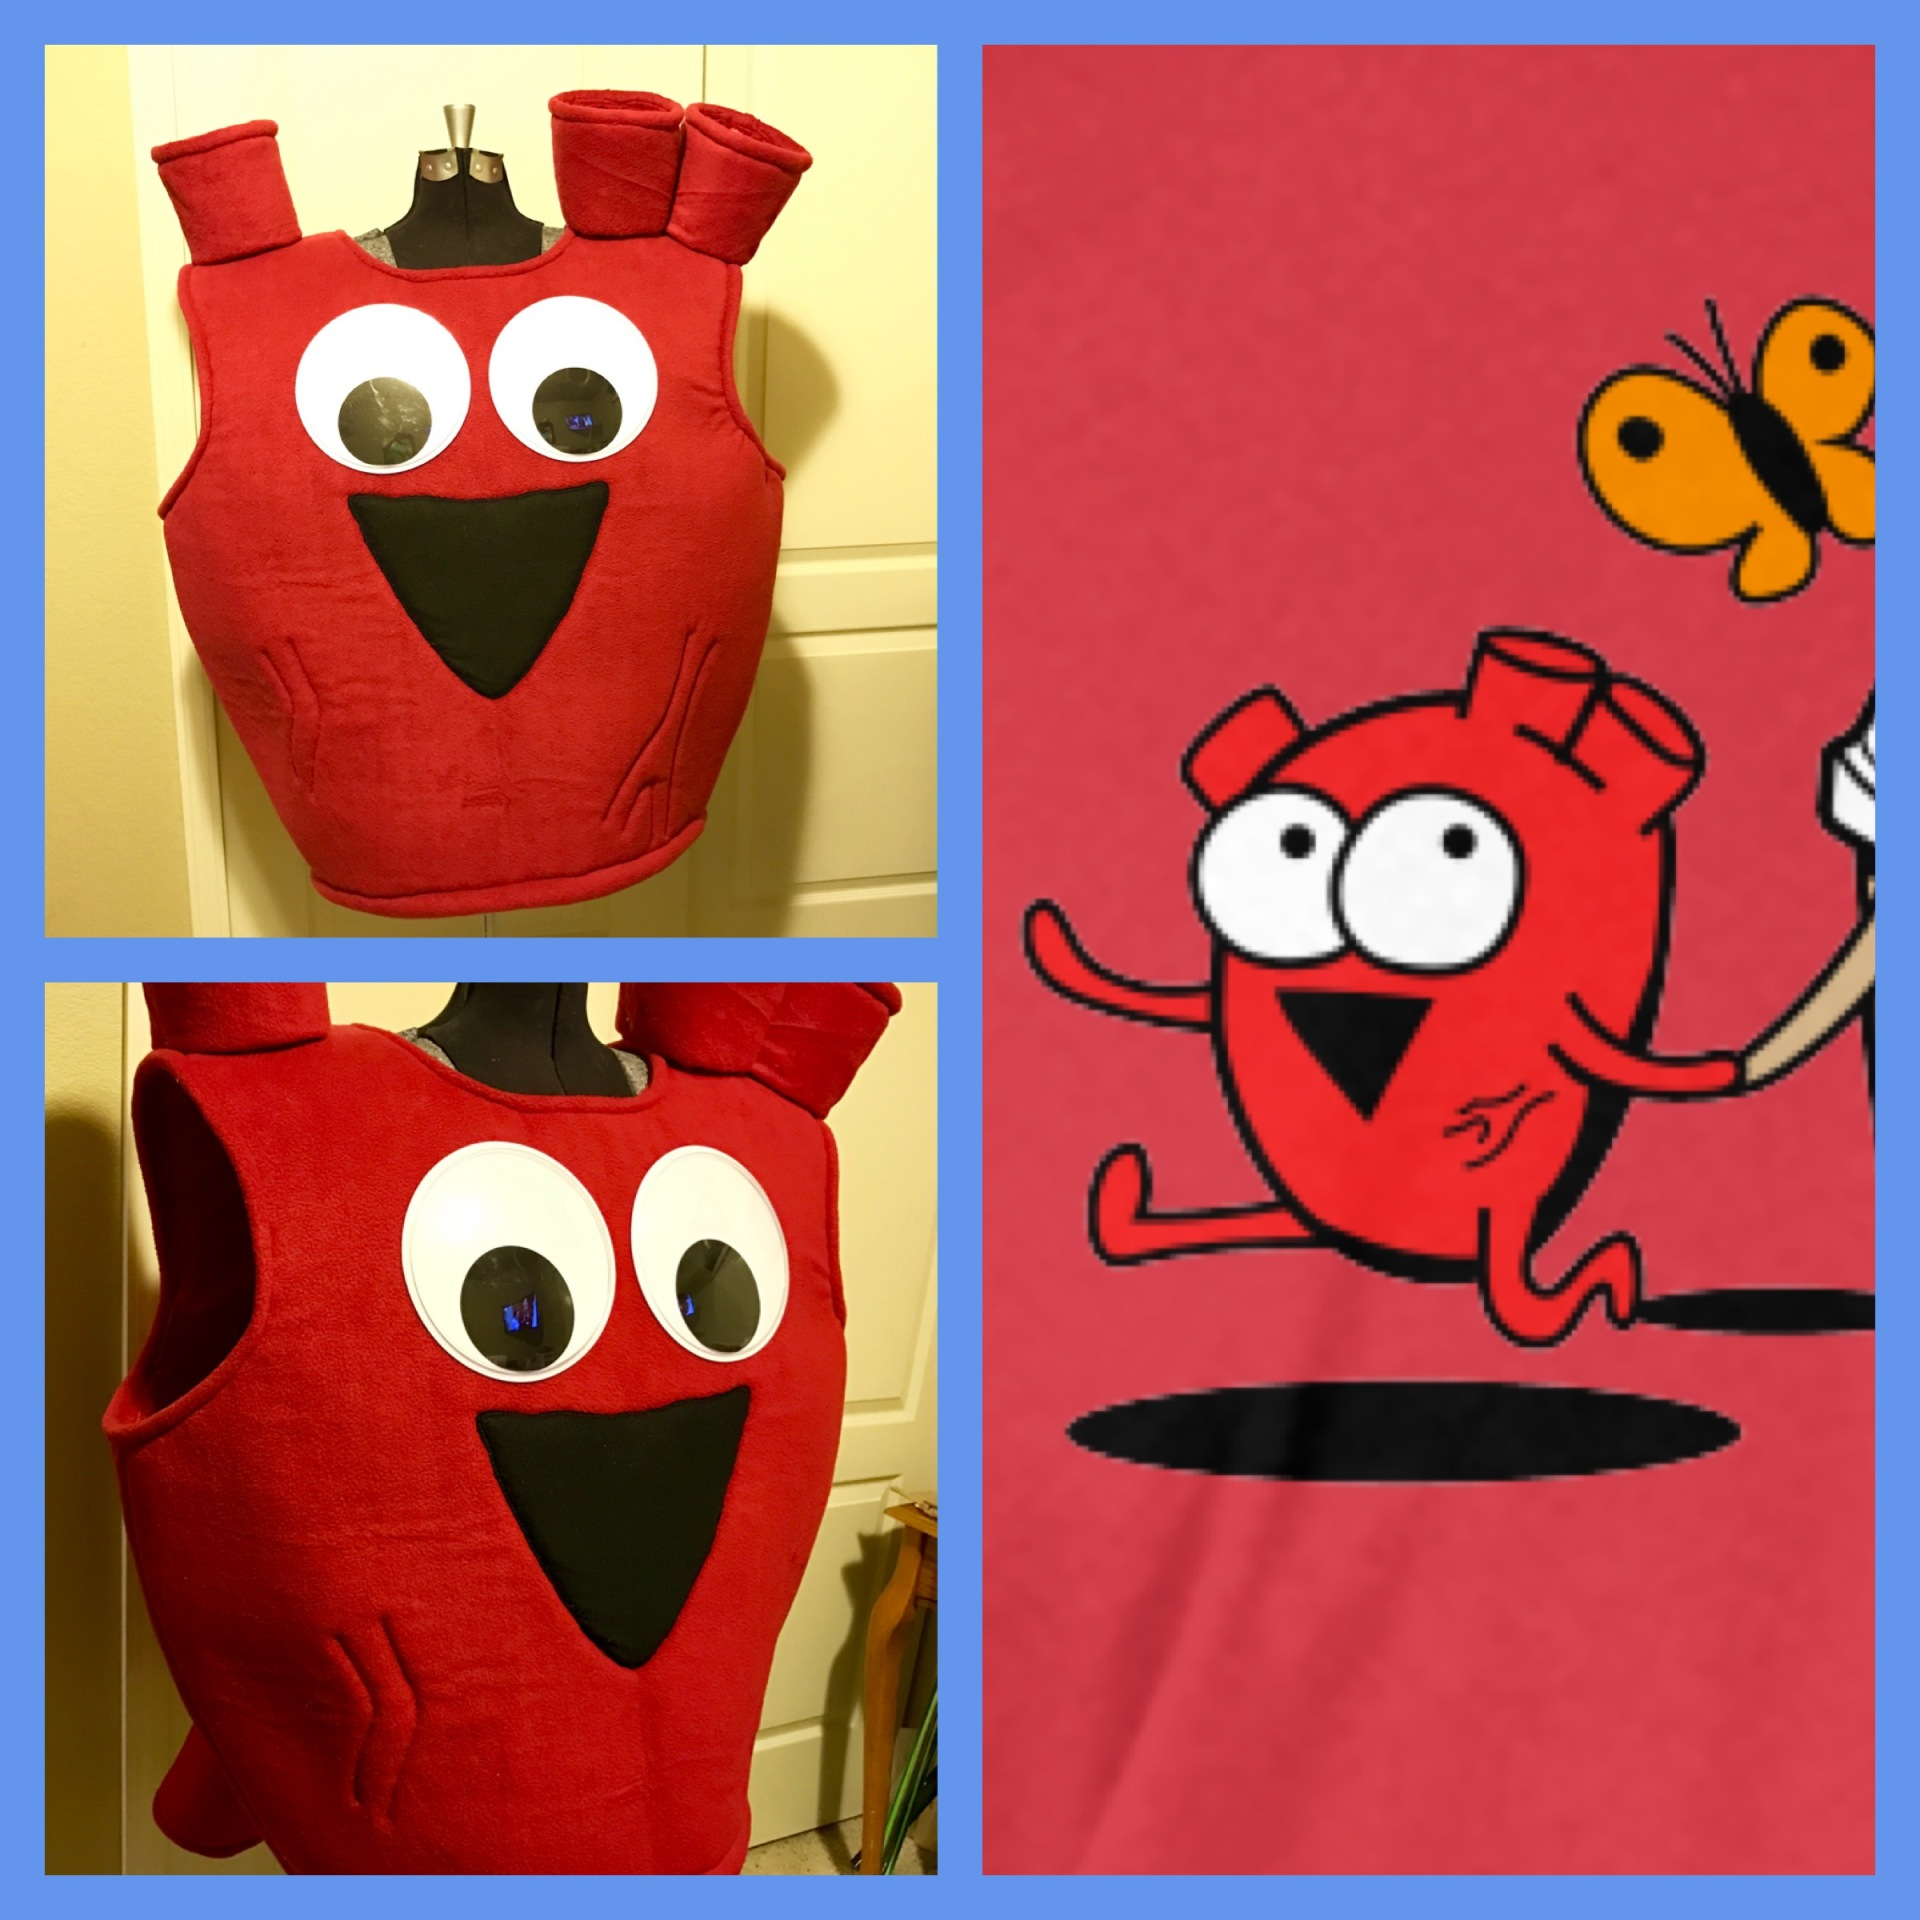 Heart Costume from The Awkward Yeti